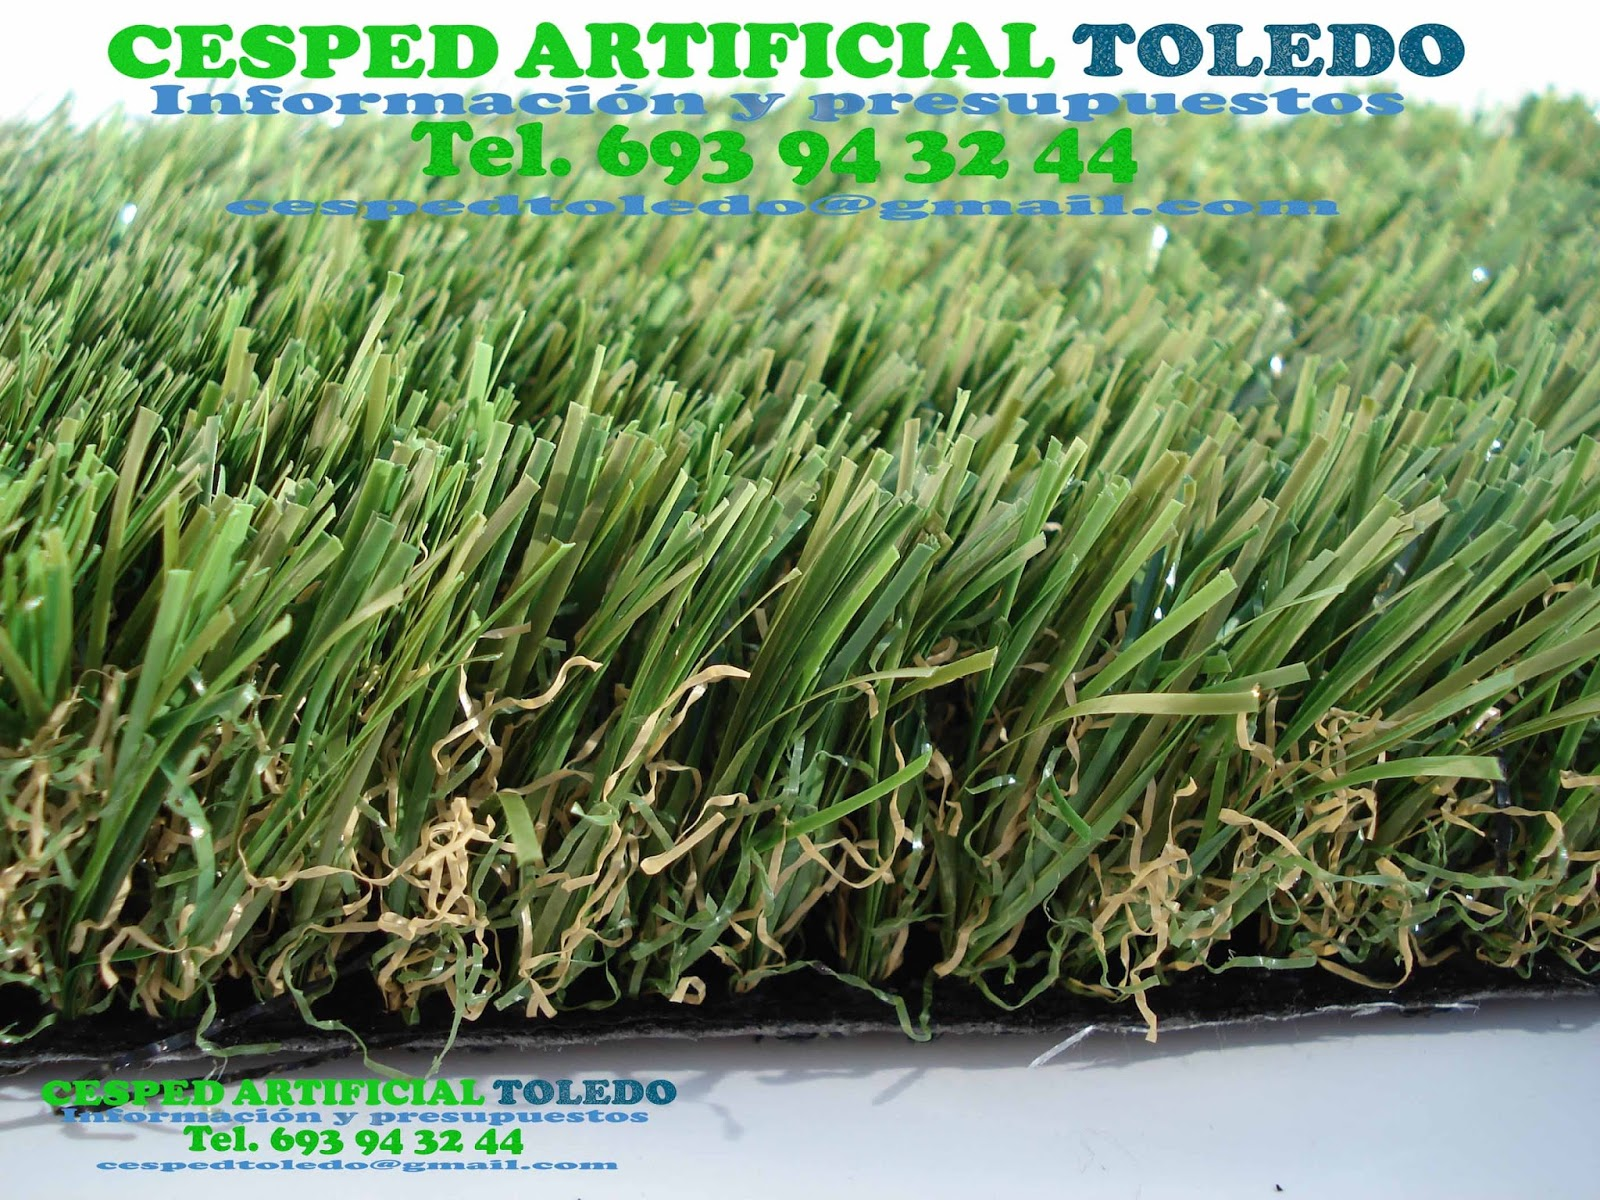 CESPED ARTIFICIAL TOLEDO